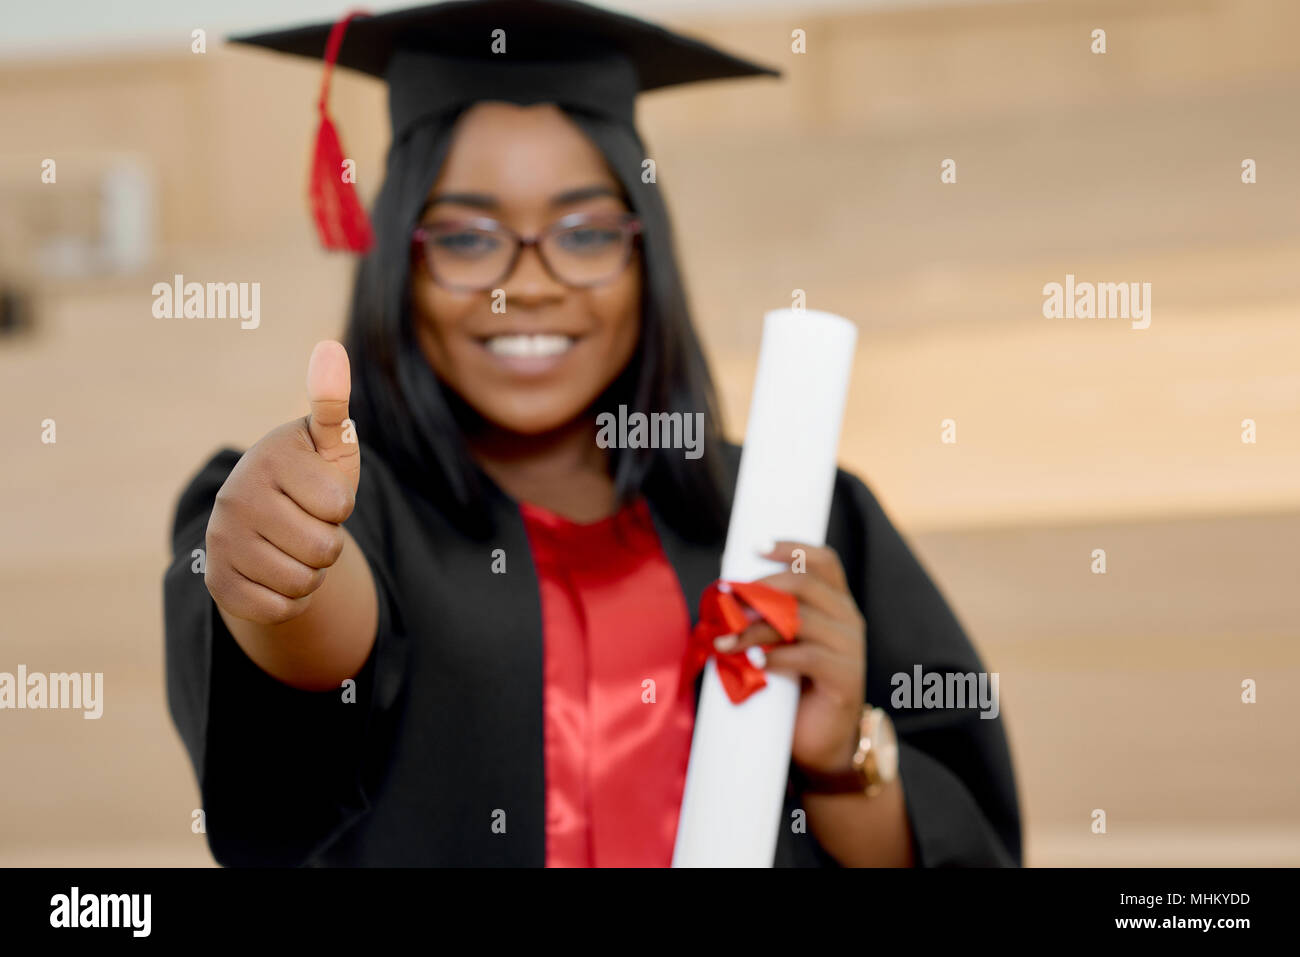 Positive girl graduating from university. Student wearing black and red education gown and keeping diploma.Standing in classroom with wooden cascade desks. Smiling, feeling happy. Blurred focus. - Stock Image